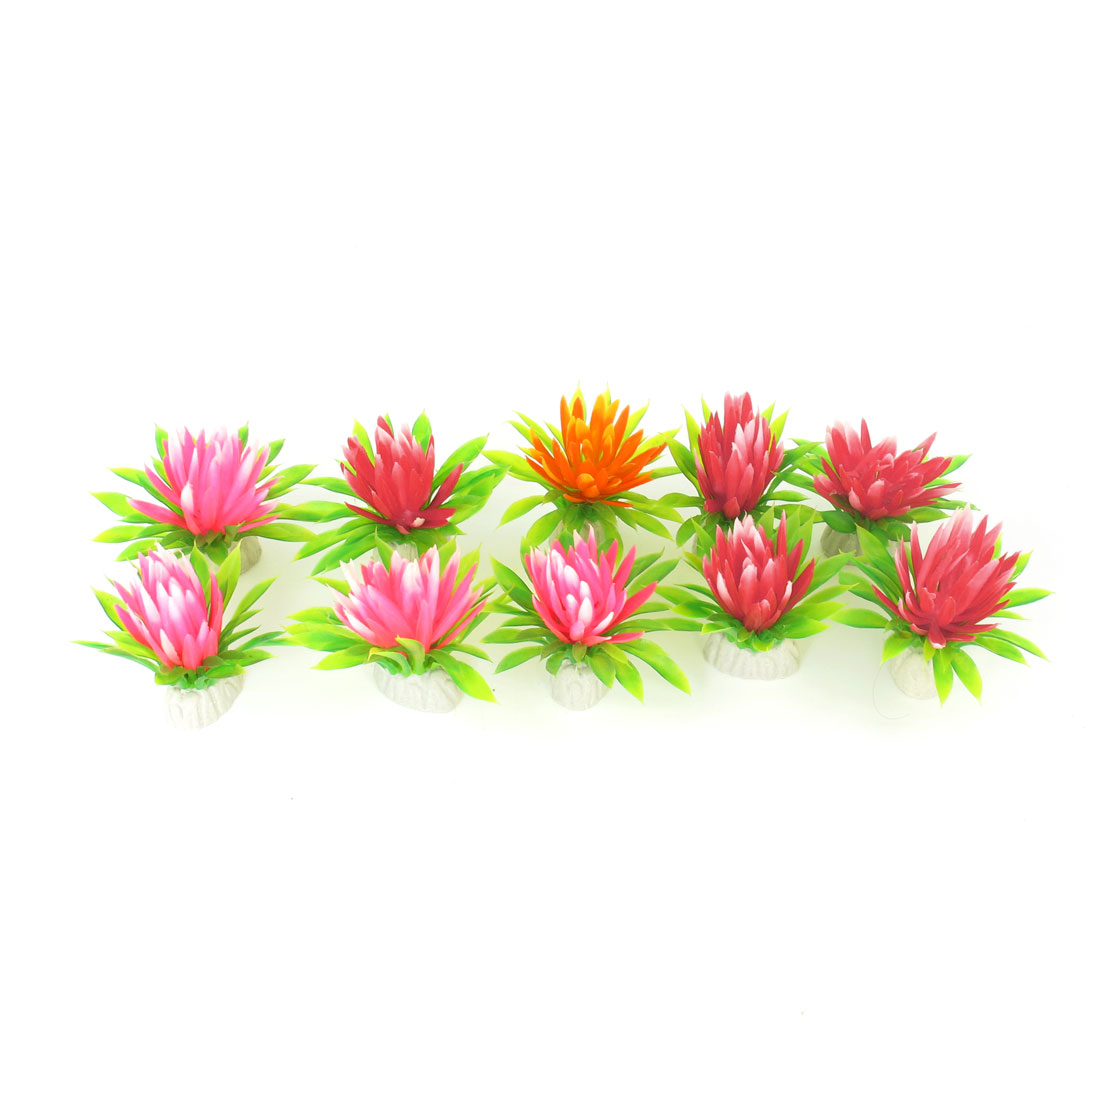 "10 Pcs 2.4"" High Red Orange Emulational Aquatic Fish Tank Plants Decoration"